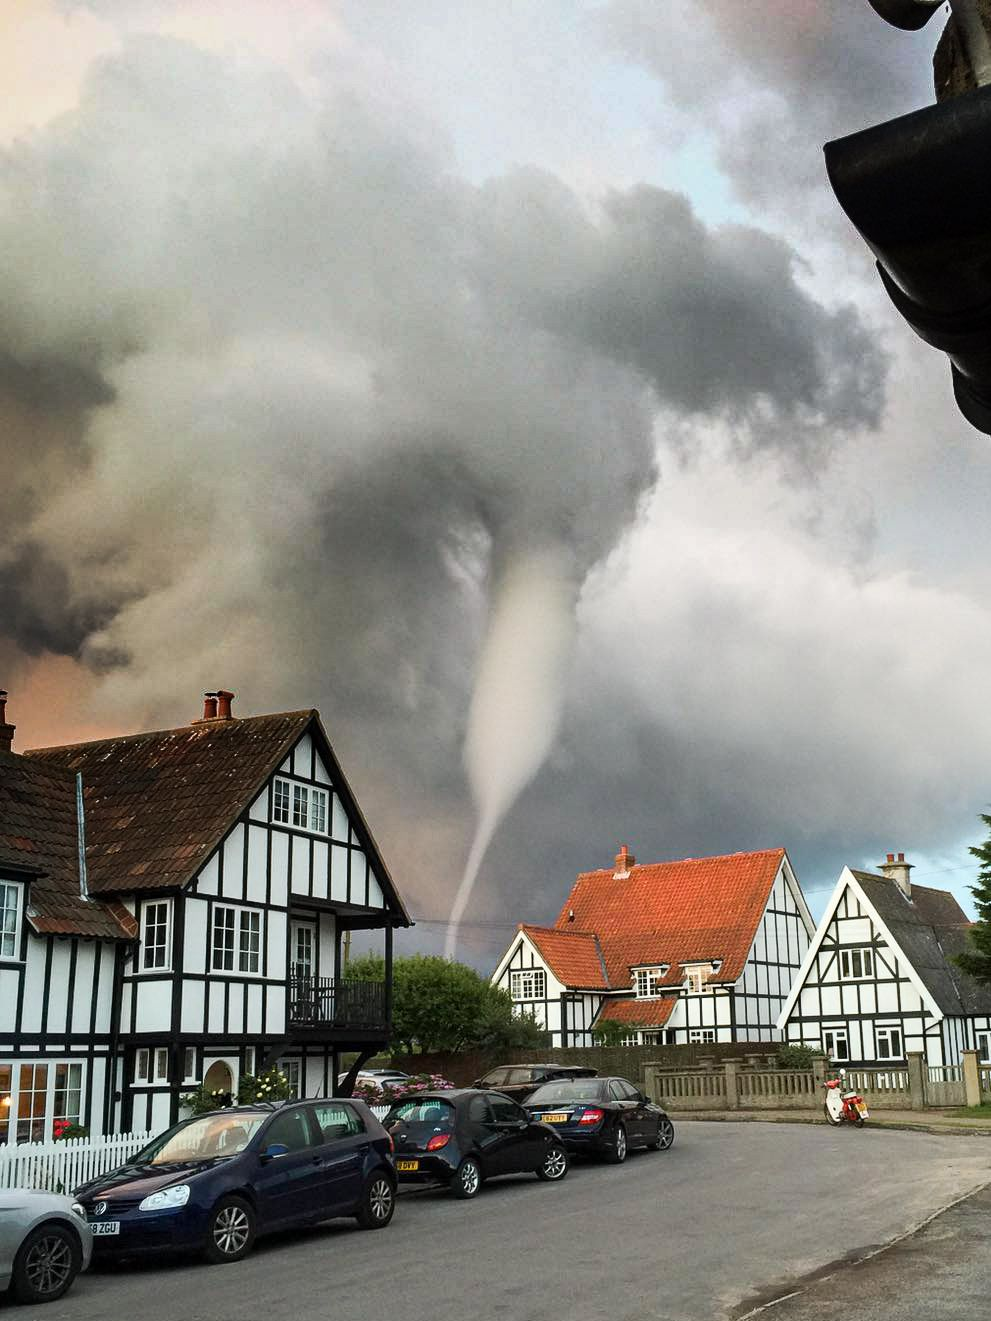 Слайд 68 из 86: Tornado over Thorpeness, Suffolk, UK - 30 Jul 2016 The tornado over Thorpeness